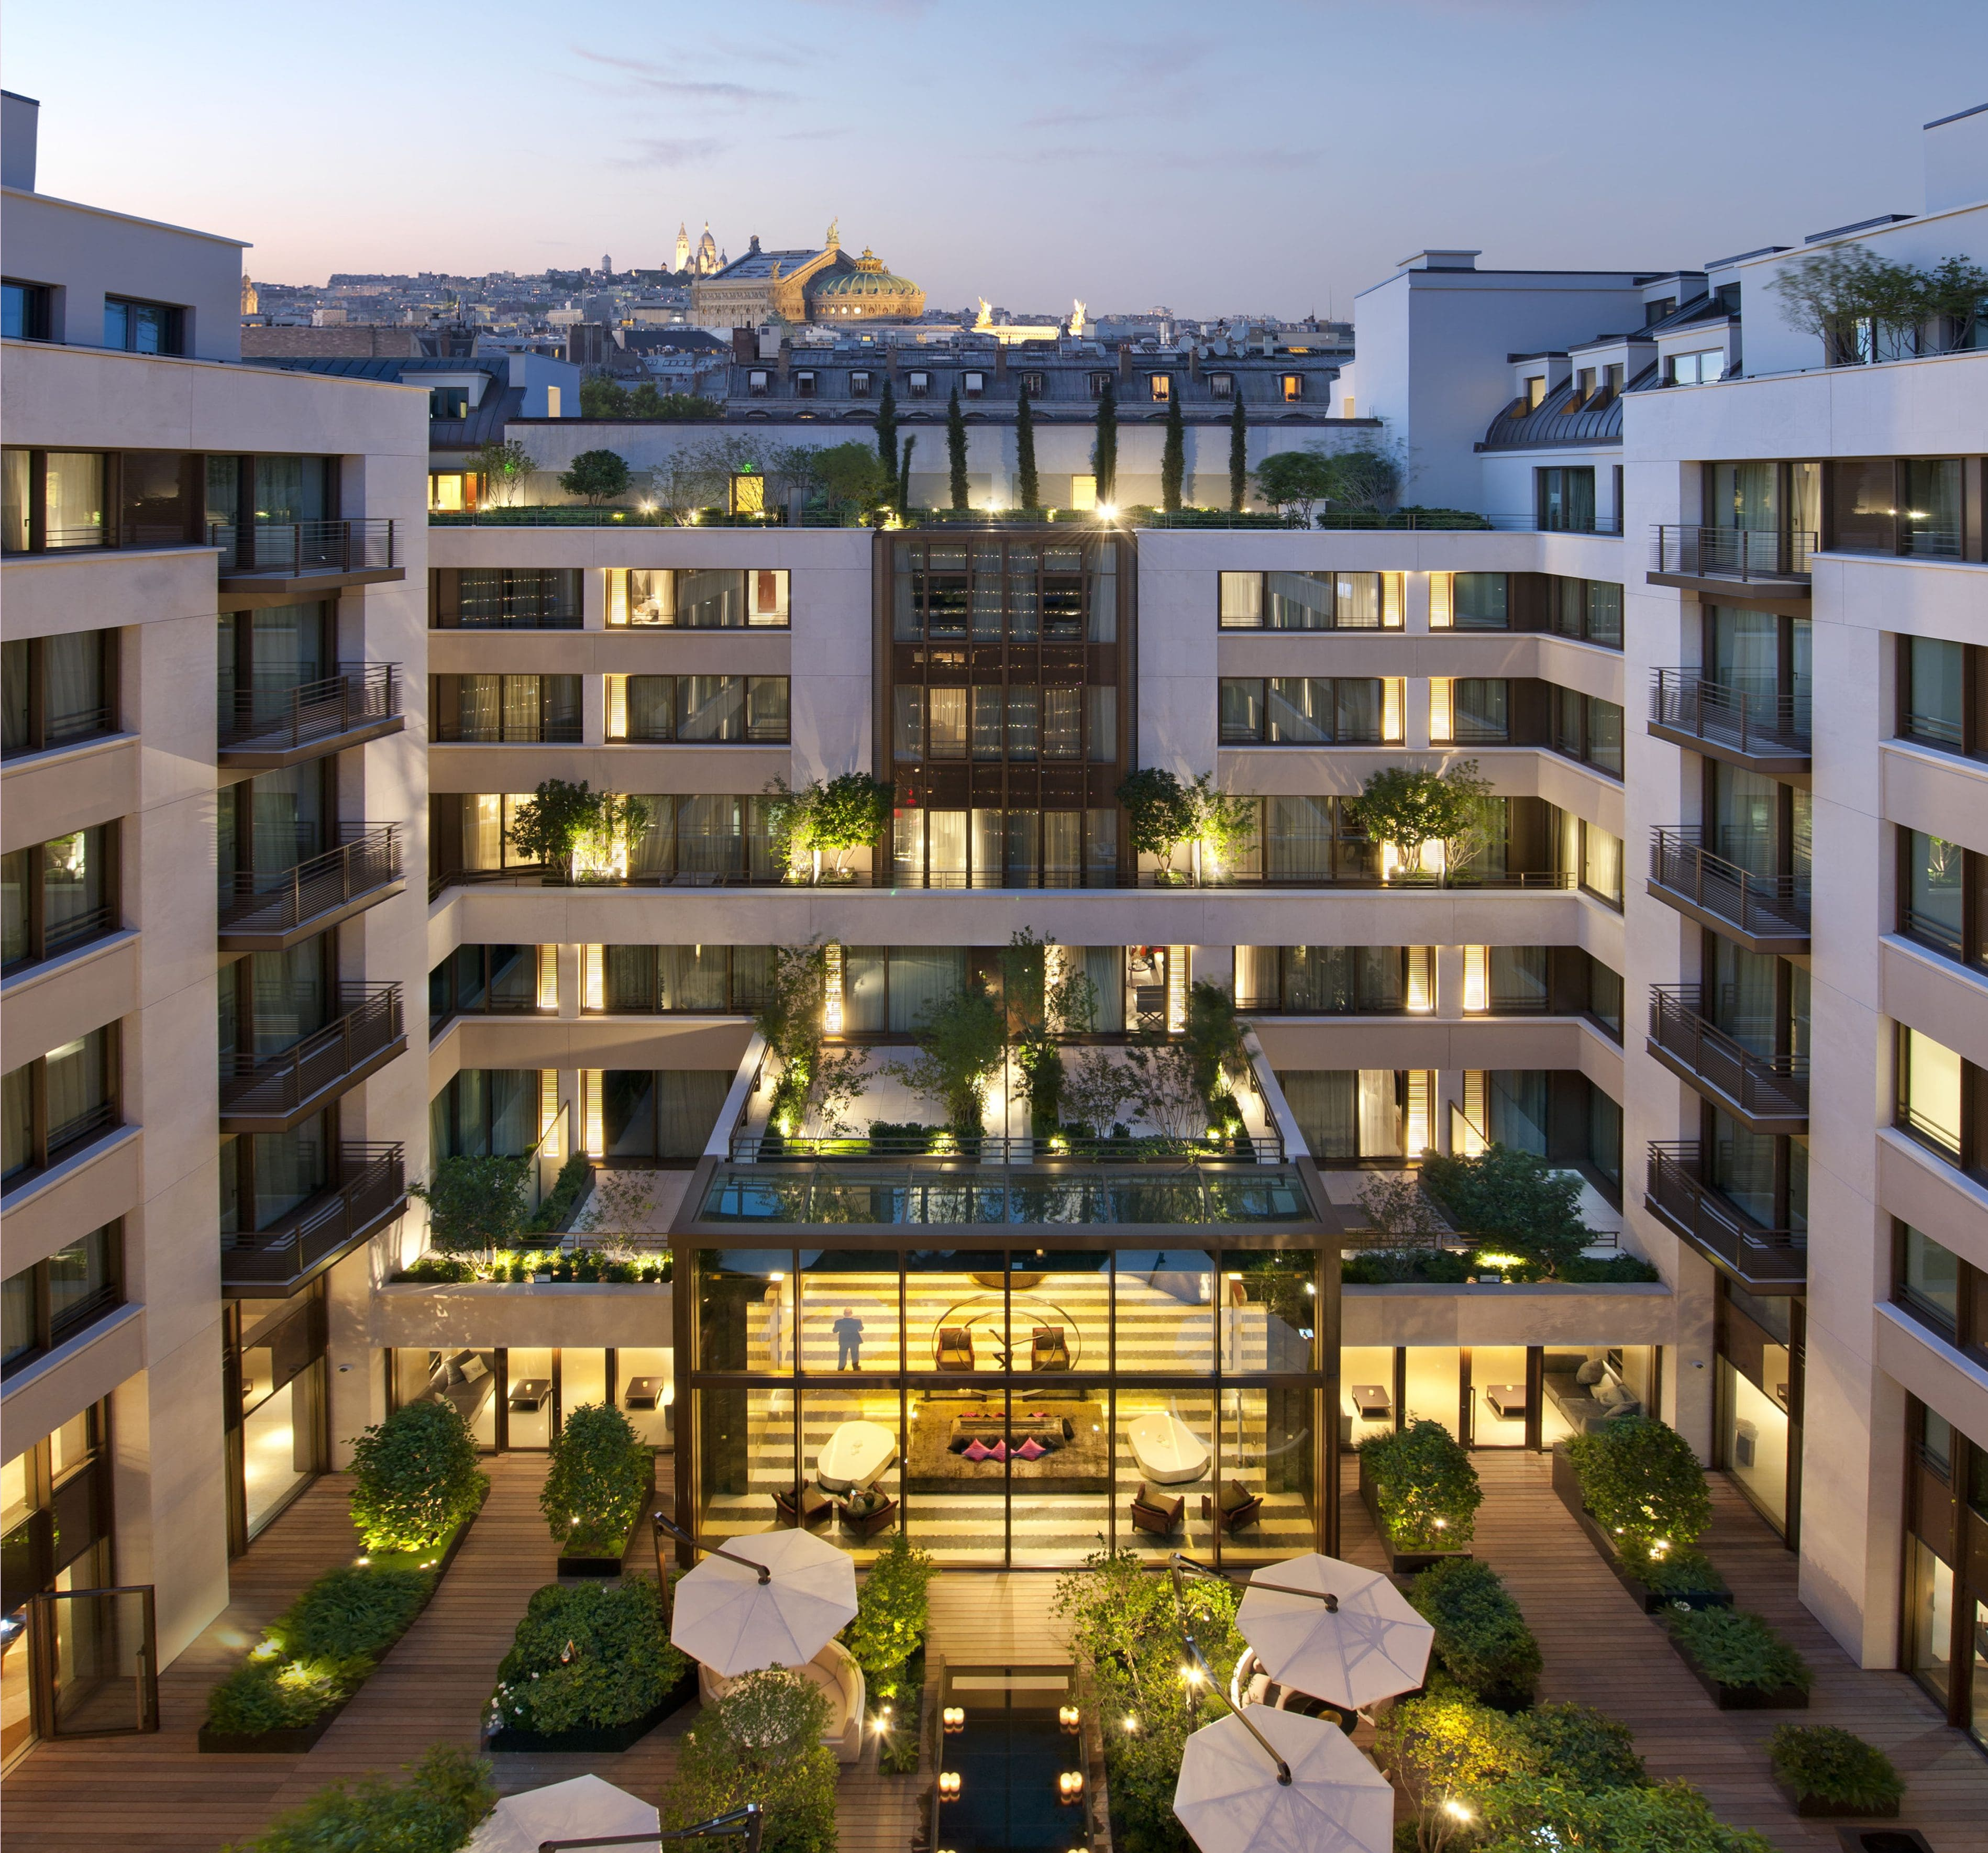 mandarin oriental hotel Comfortable stay in the north of thailand, luxurious accommodation in chiang mai.